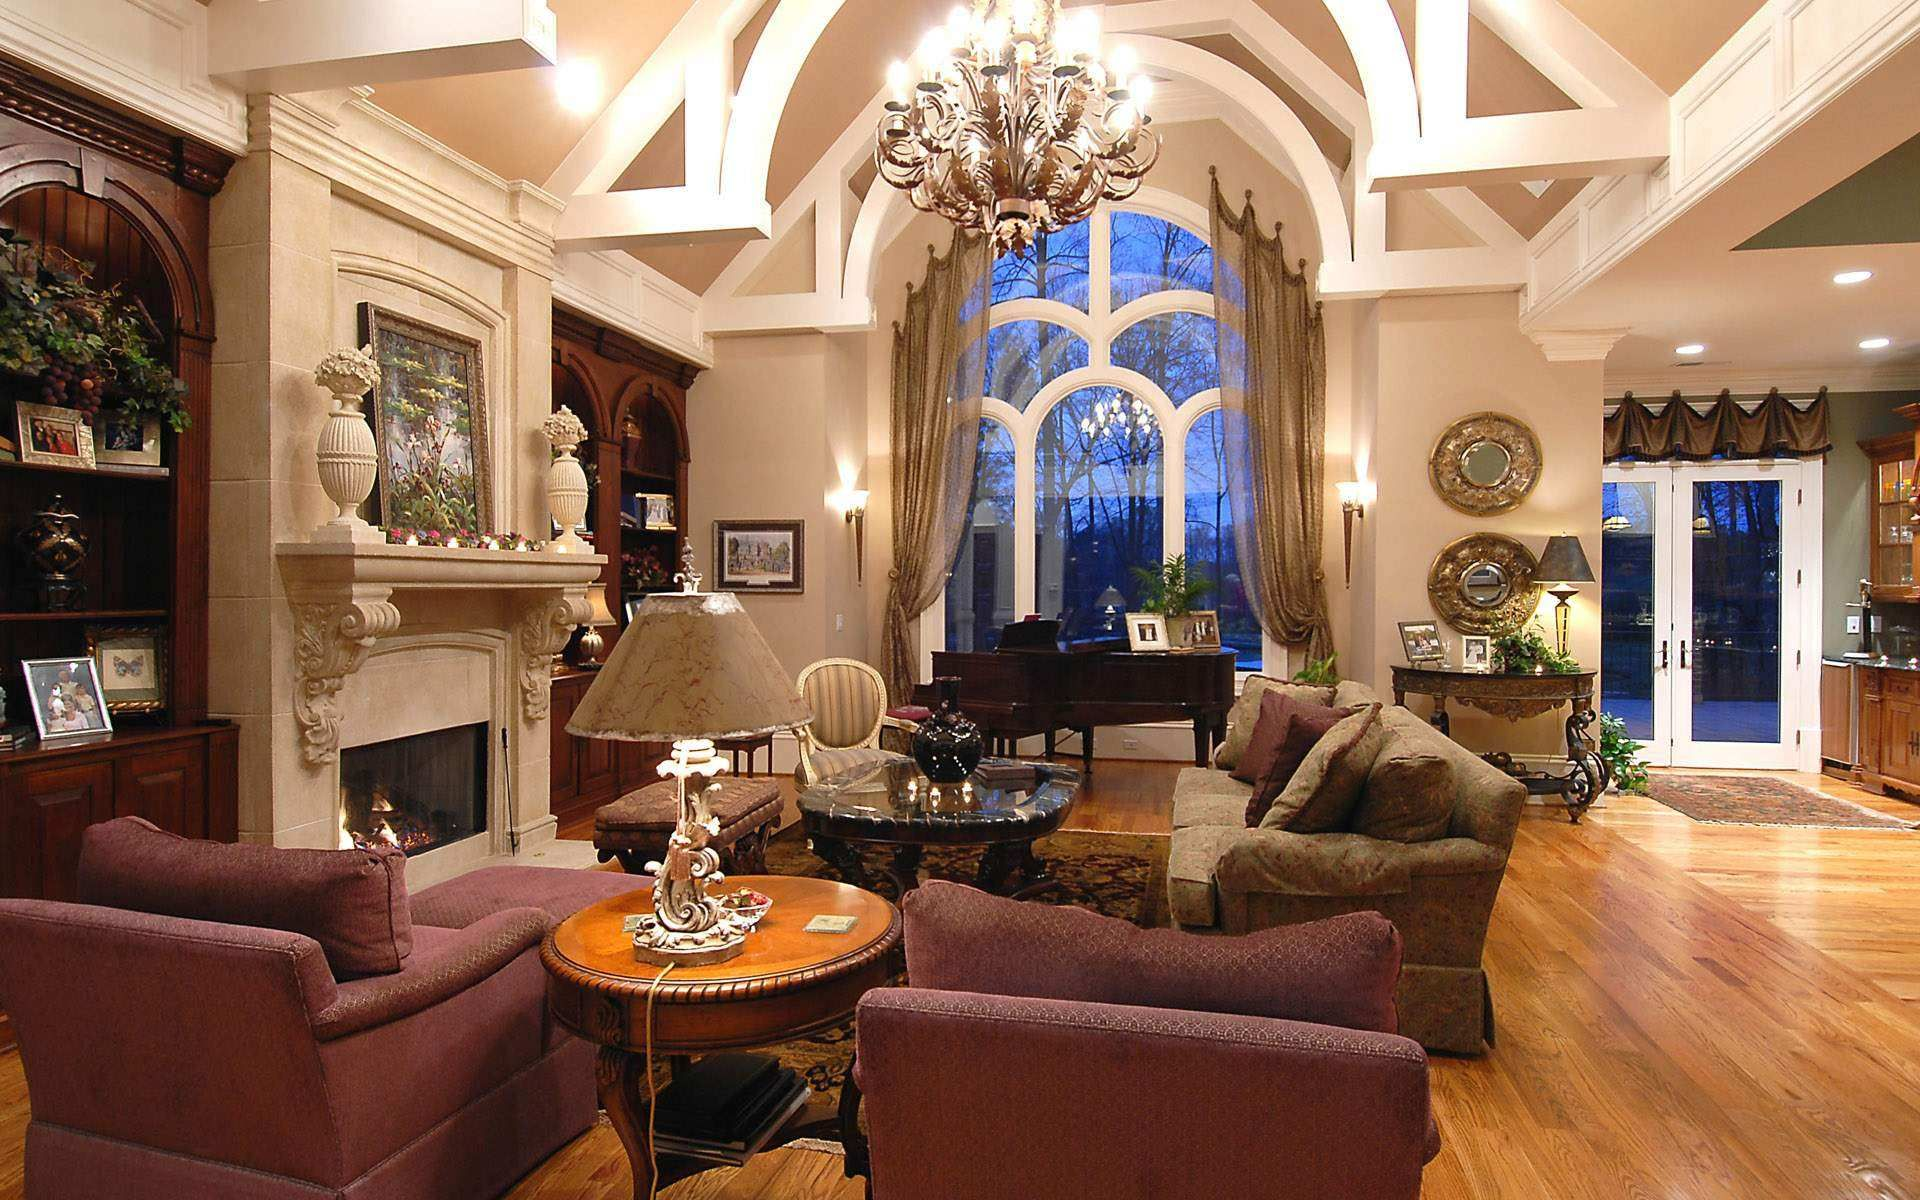 Living Room Luxury Furniture Living Room Luxury And Expensive Living Room With Wooden Floor